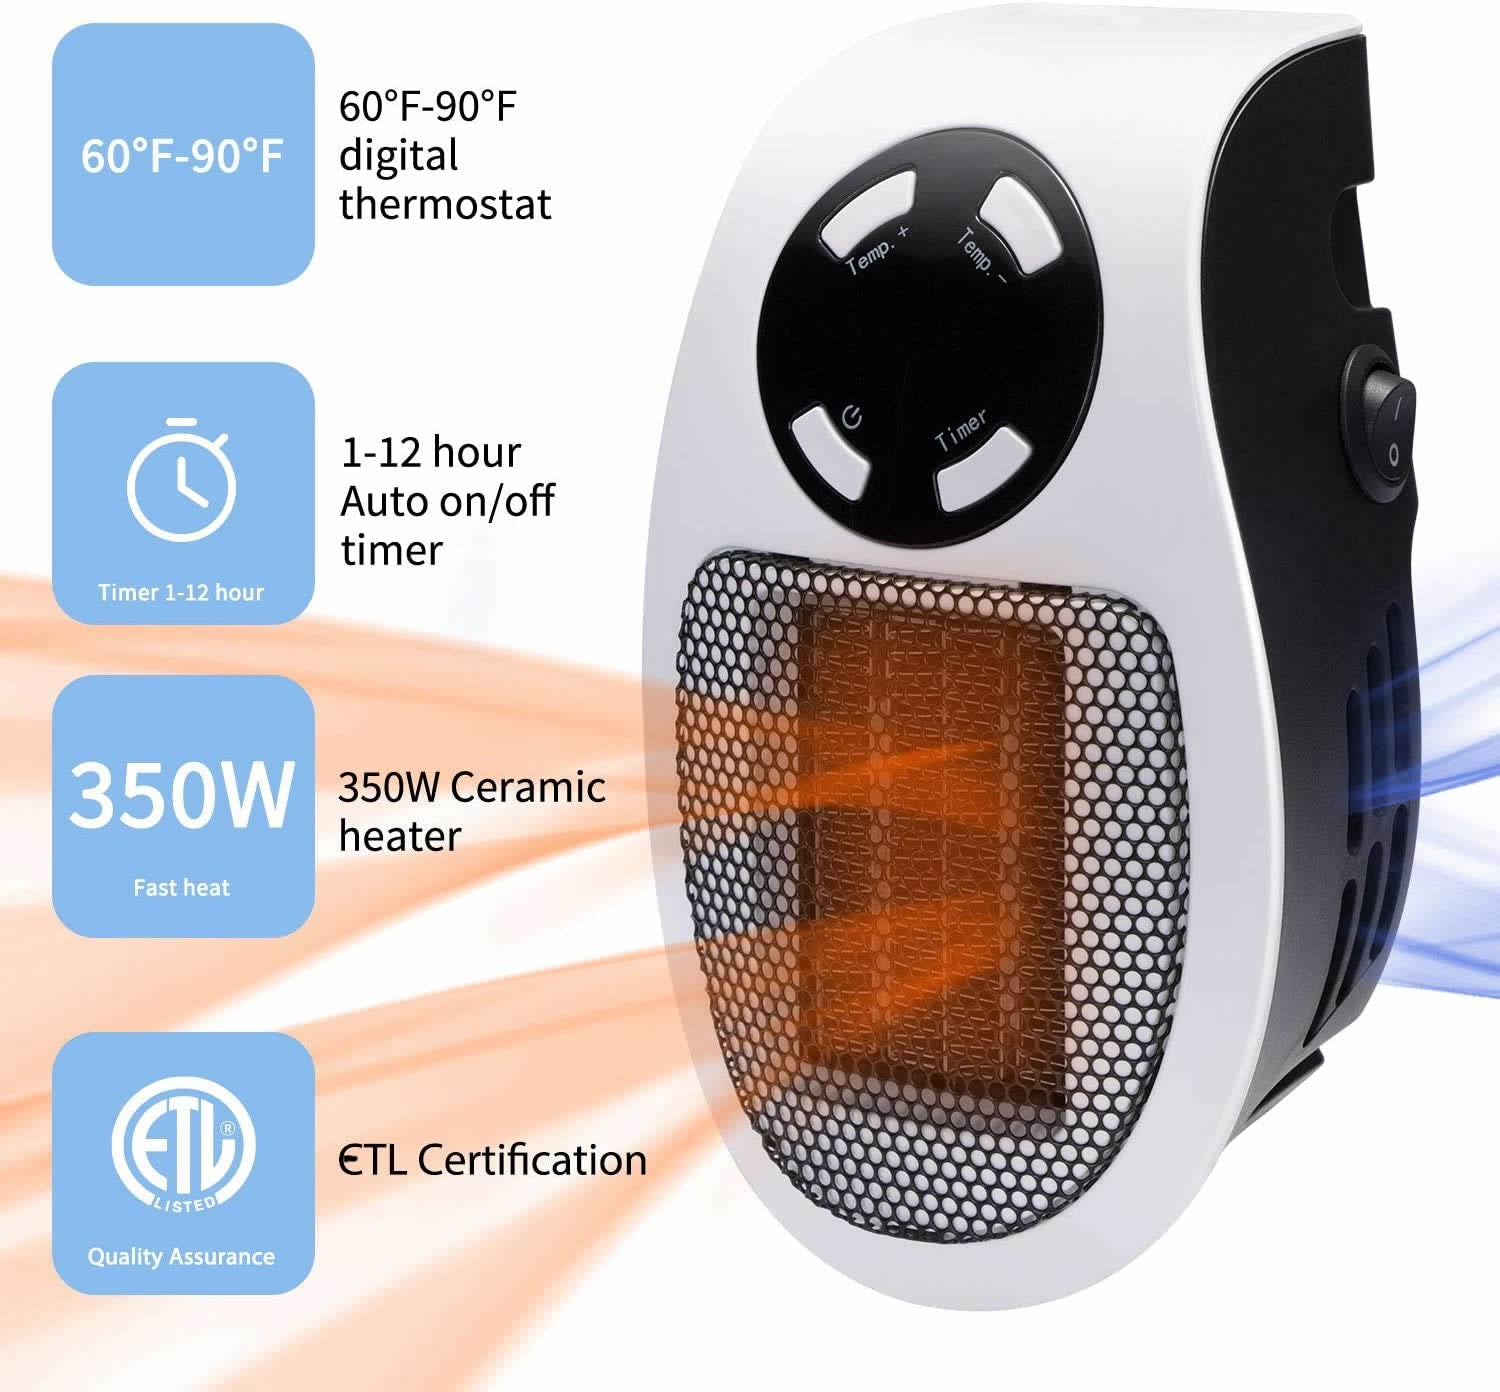 shopify-Personal Space Mini Heat Blaster With Remote Control-5